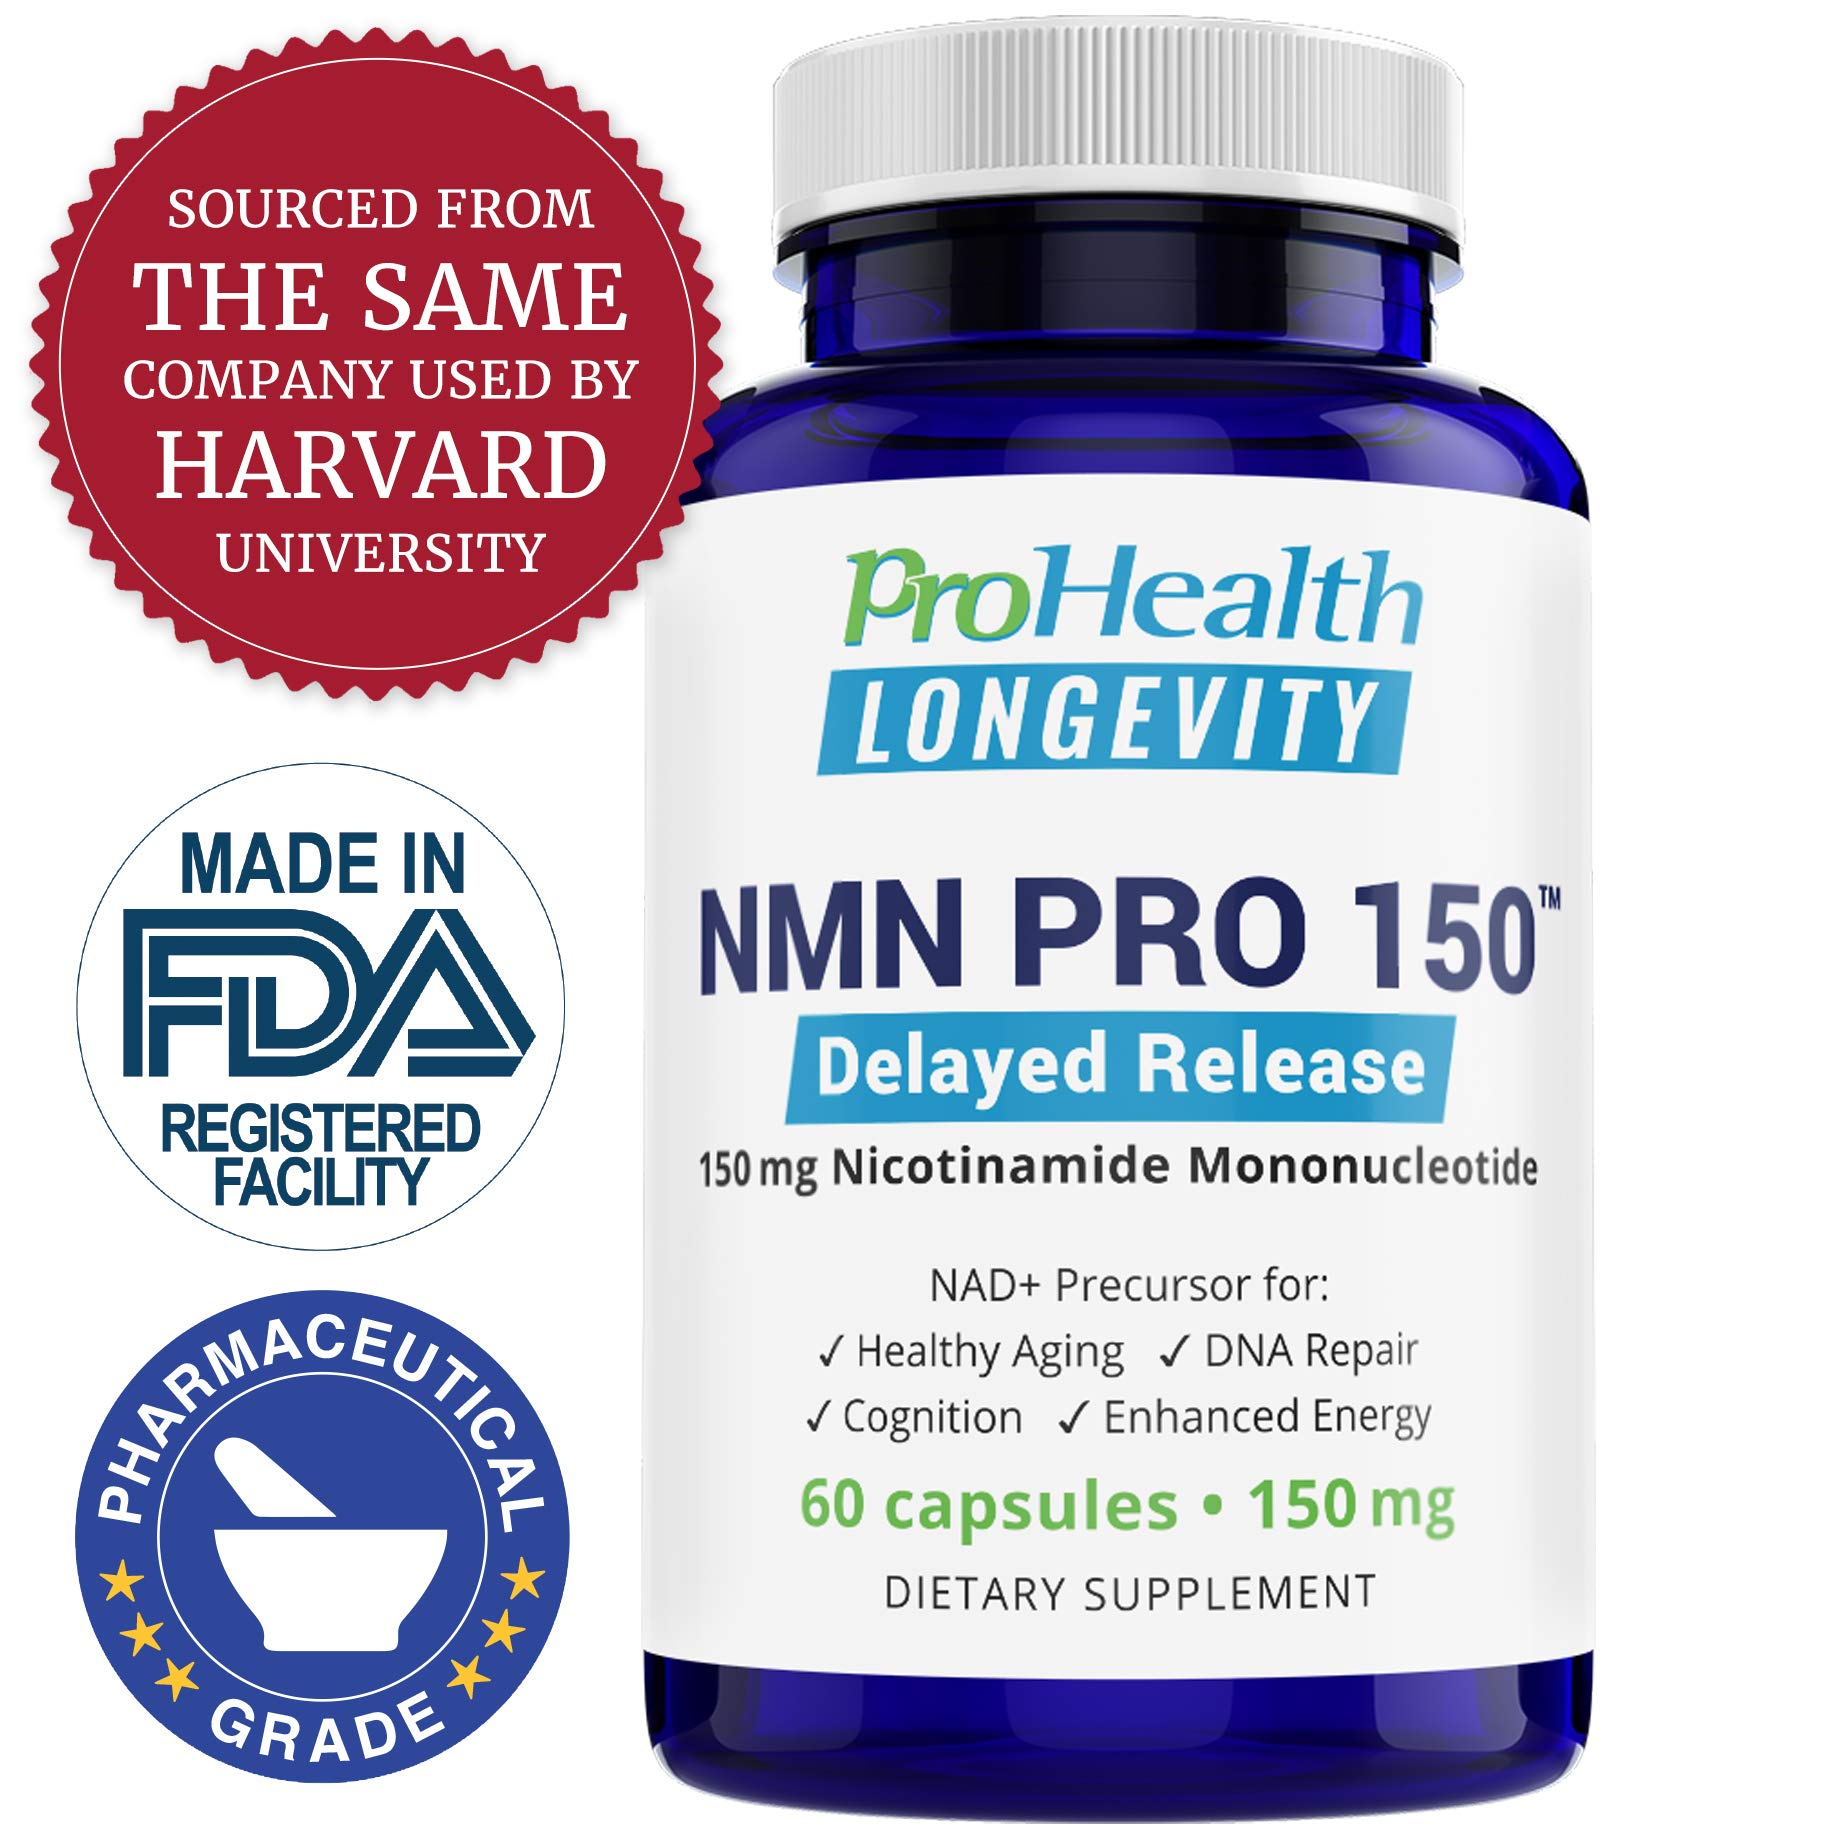 ProHealth NMN Pro Delayed Release (150 mg, 60 Capsules) Nicotinamide Mononucleotide | NAD+ Precursor | Supports Anti-Aging, Longevity and Energy | Non-GMO by ProHealth